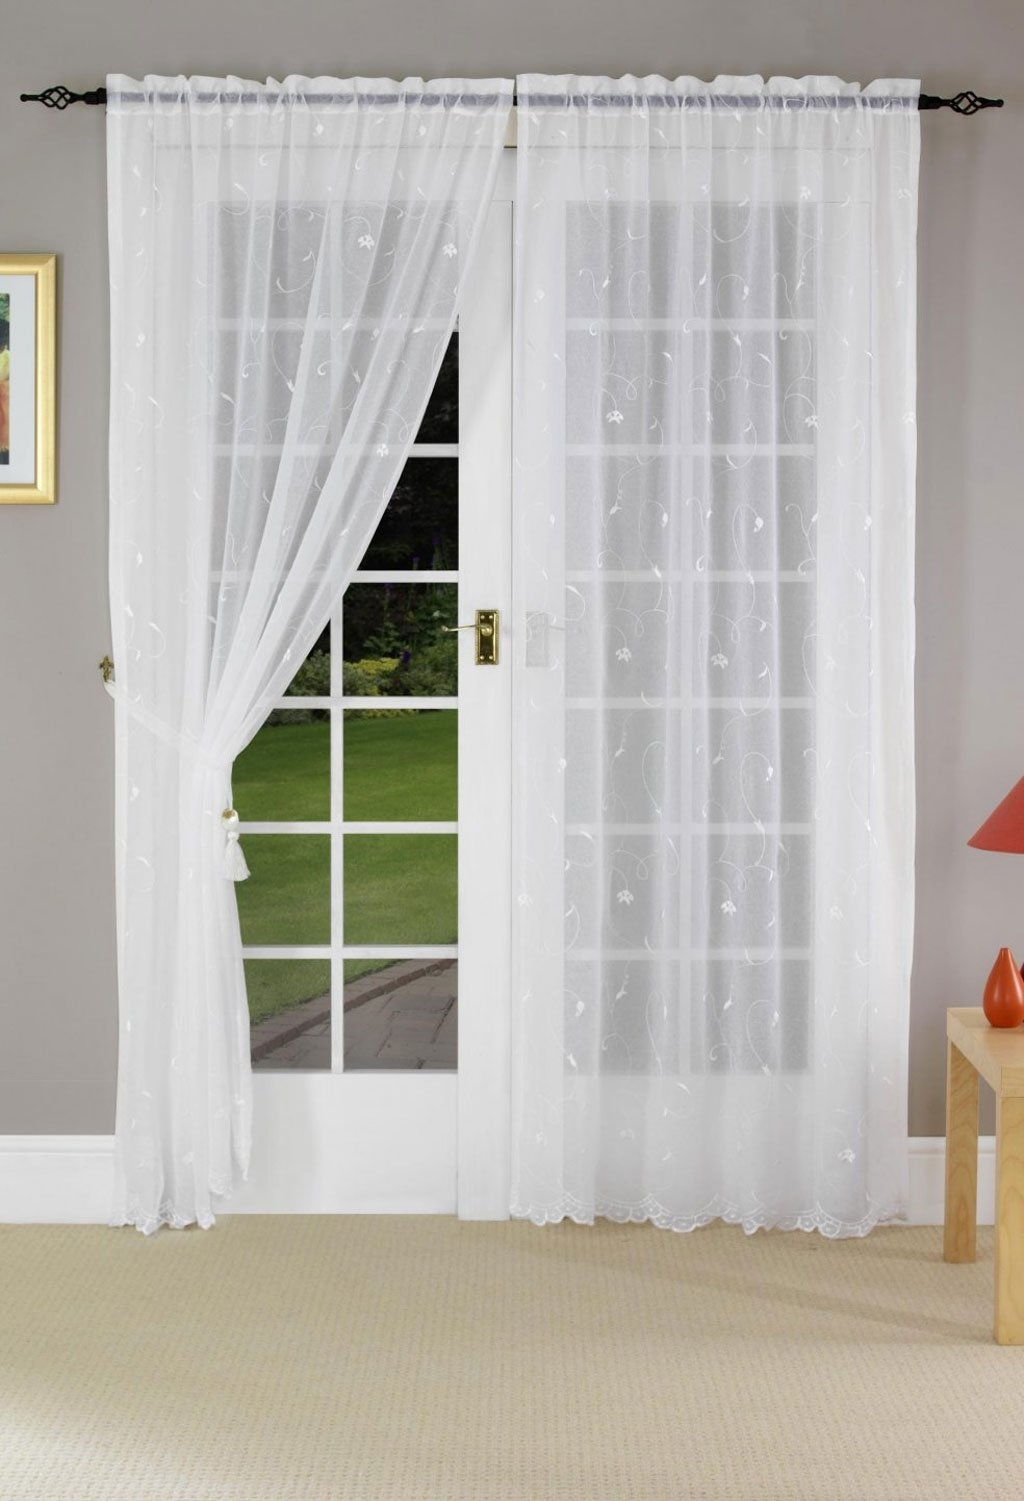 10 Stylish Curtain Ideas For French Doors blinds for patio doors ideas melissa door design 2020